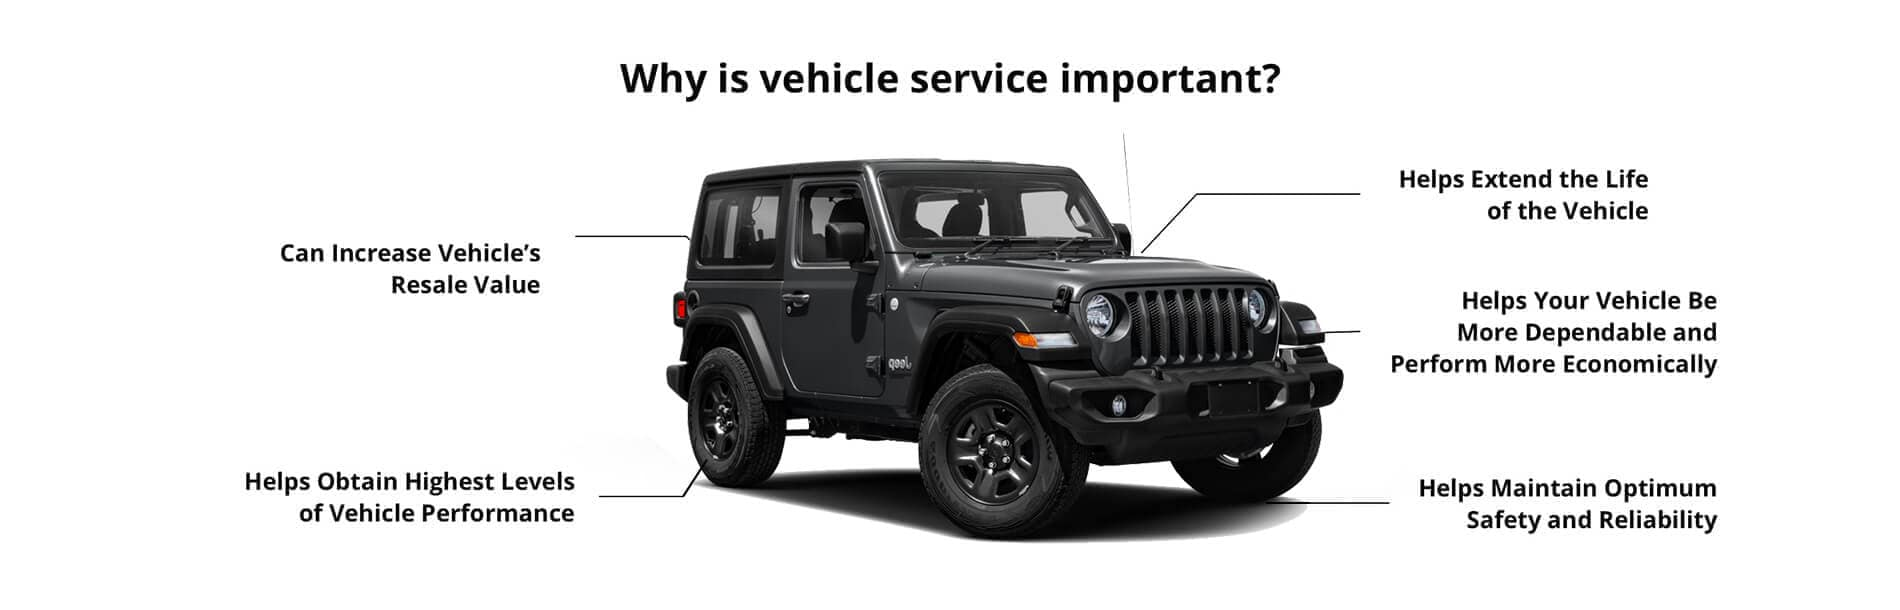 car service is important